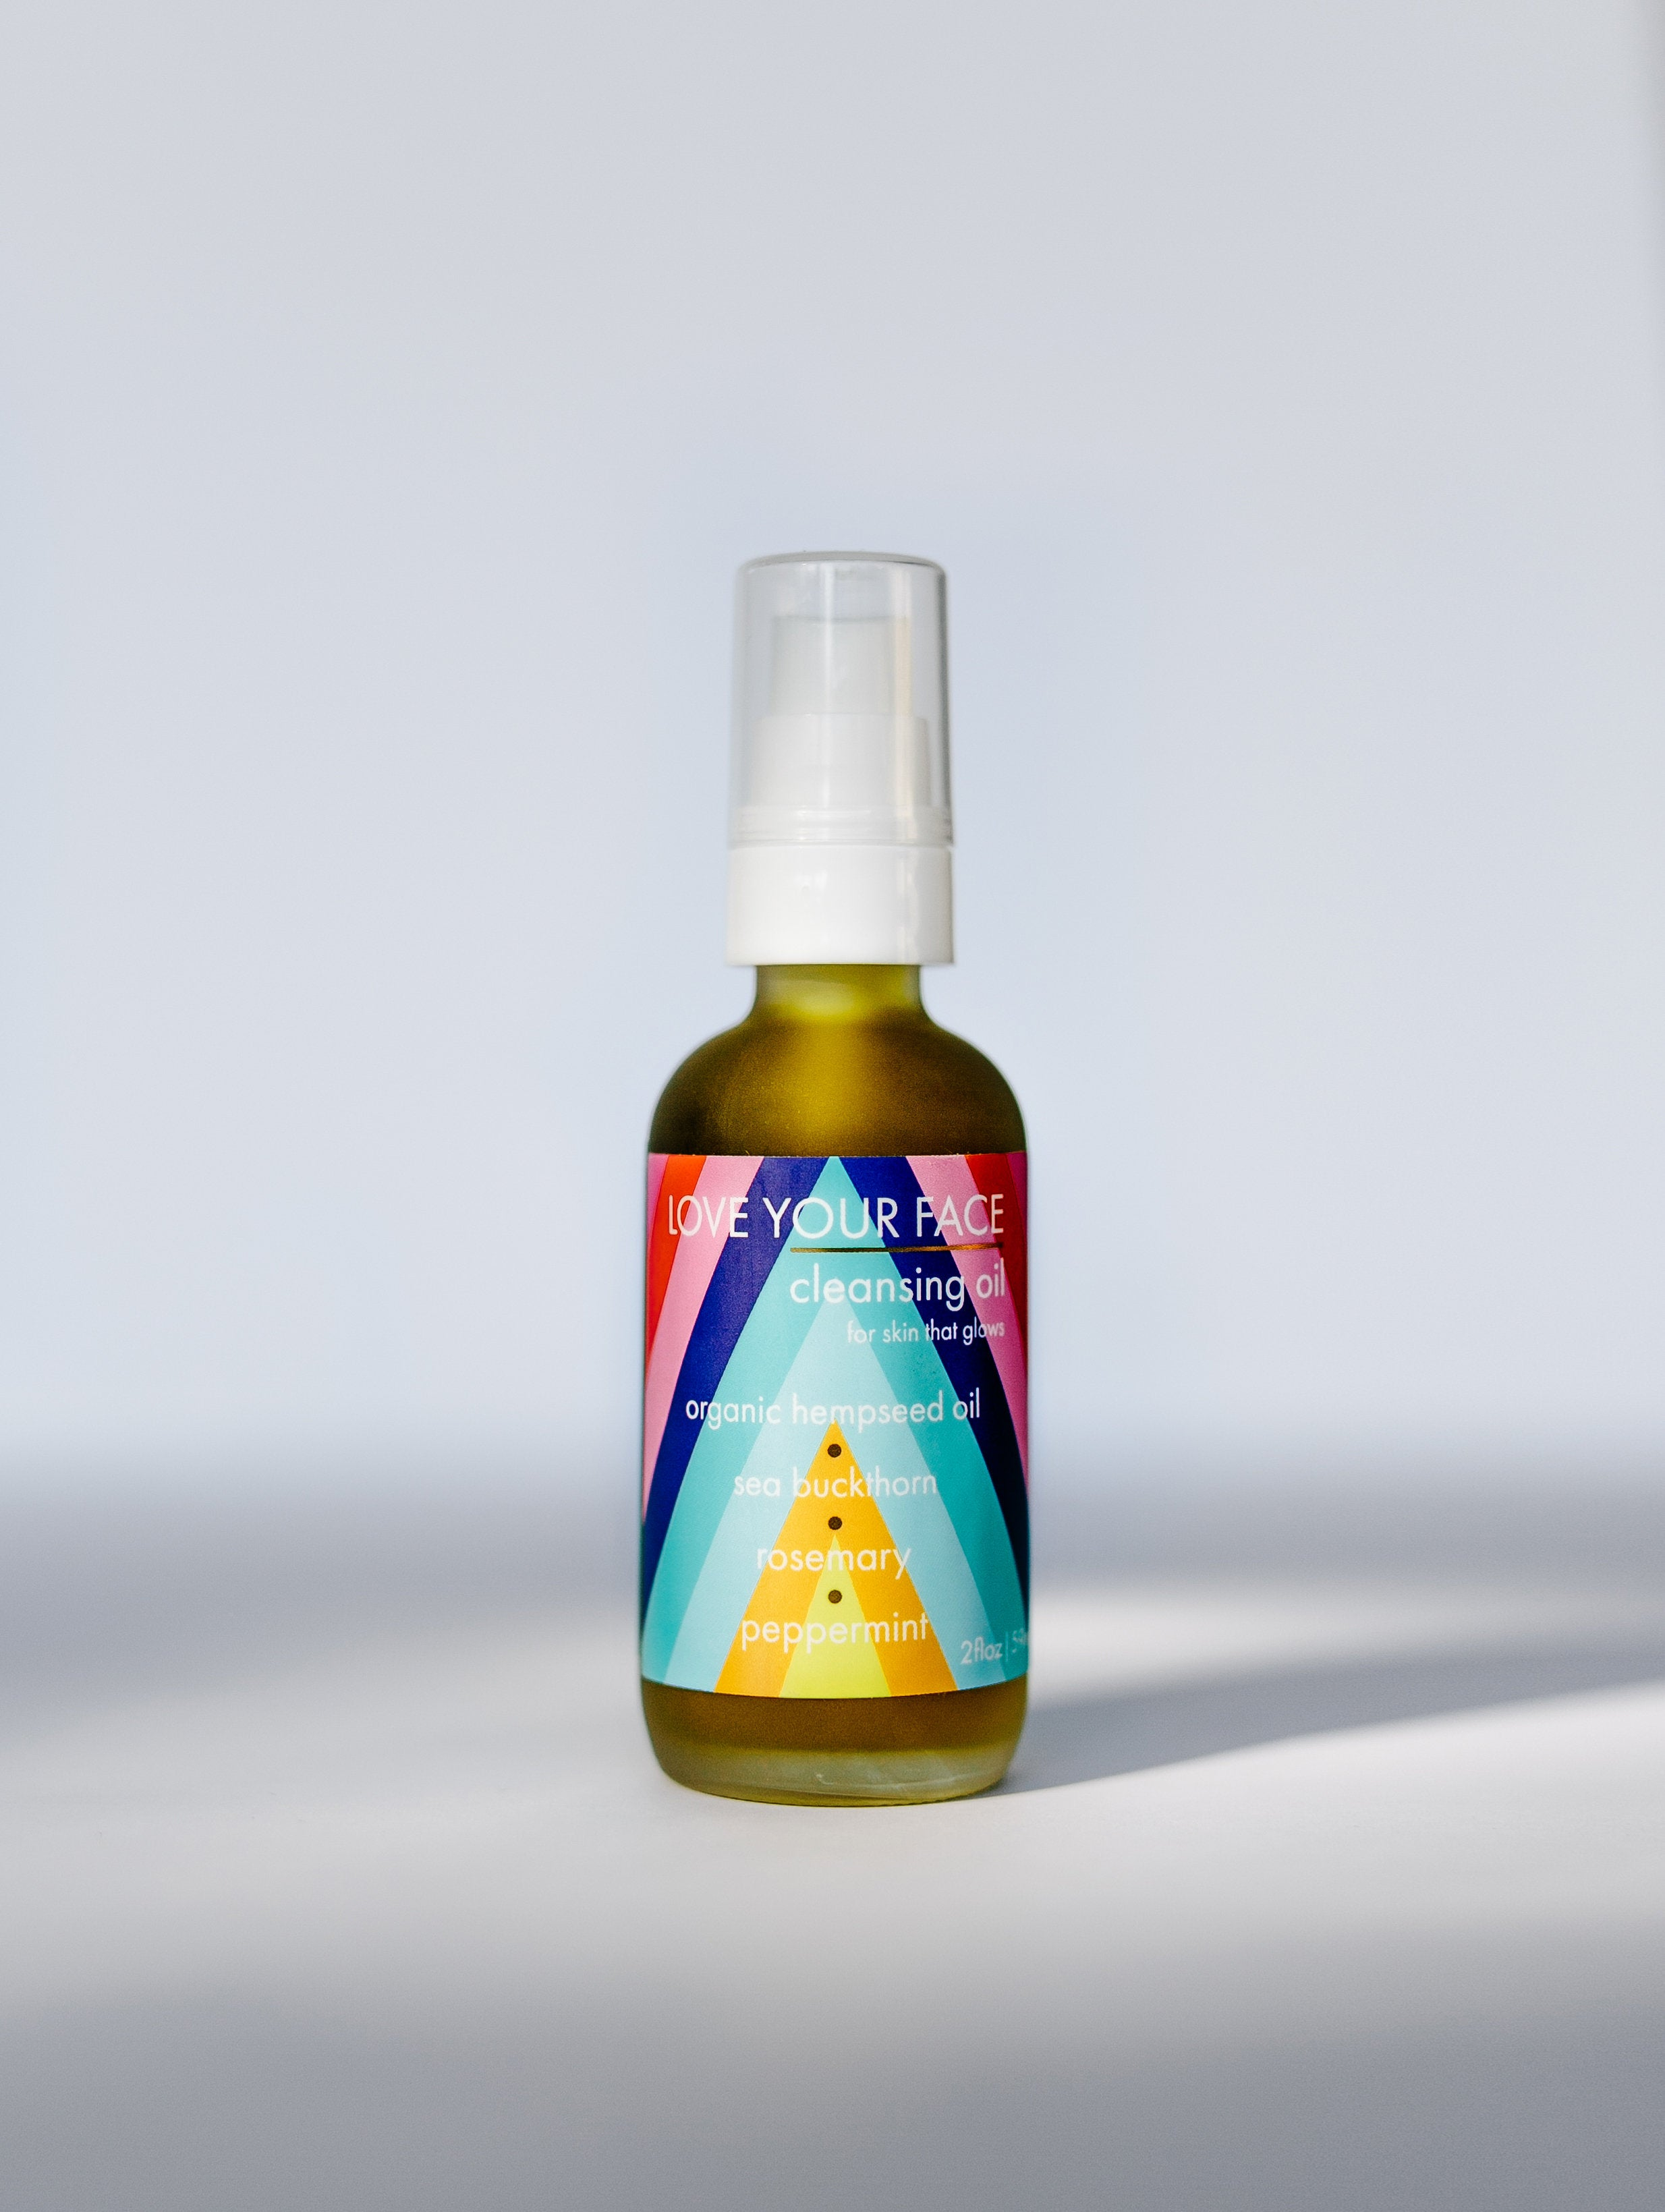 LUA skincare LOVE YOUR FACE cleansing oil Plant-based-Vegan